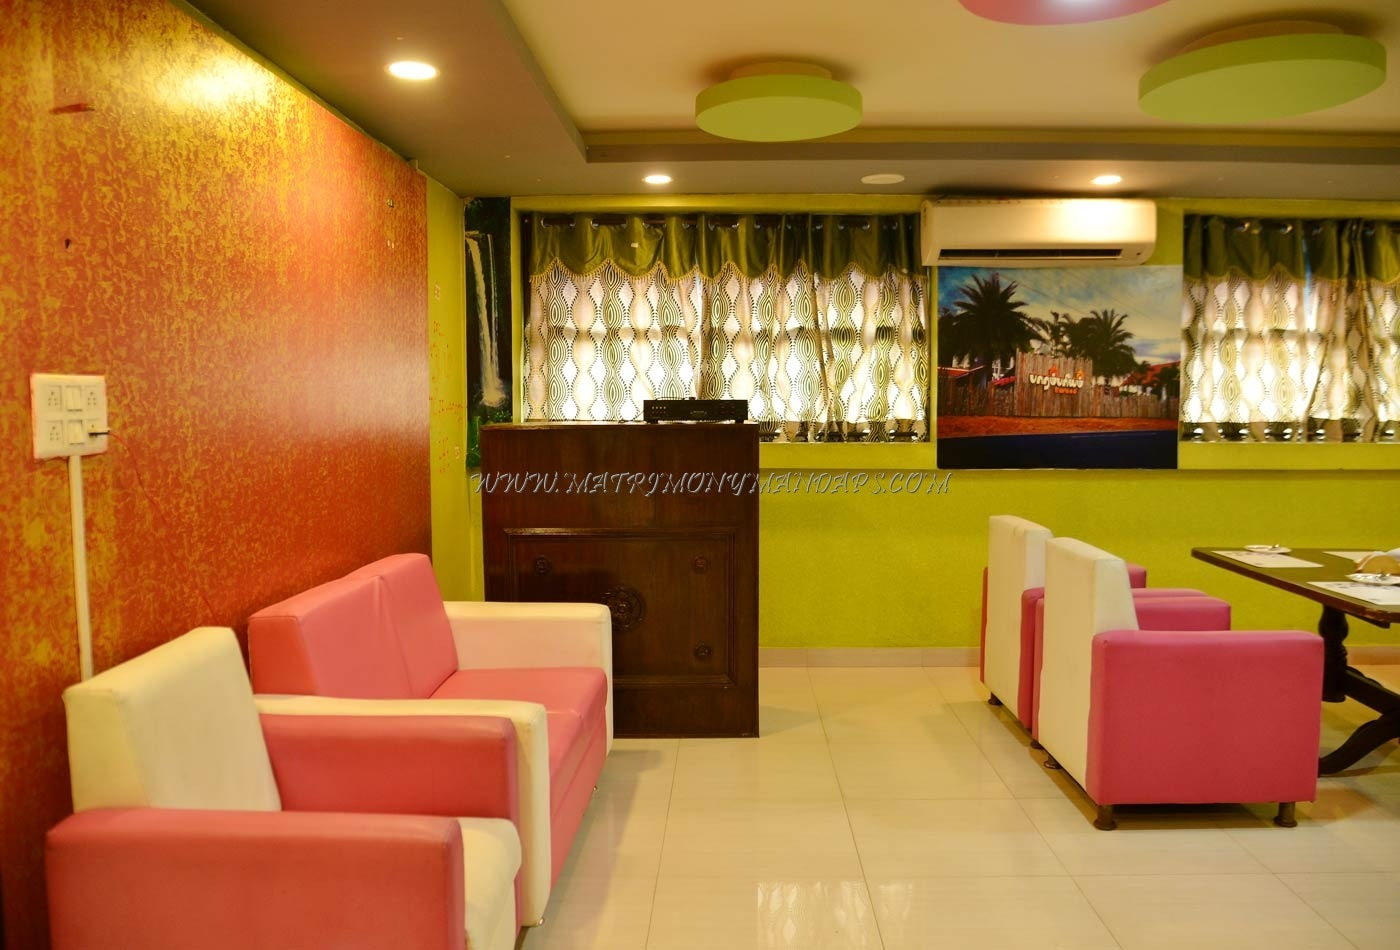 Find the availability of the Raaga Inn Residency in ECR, Chennai and avail special offers